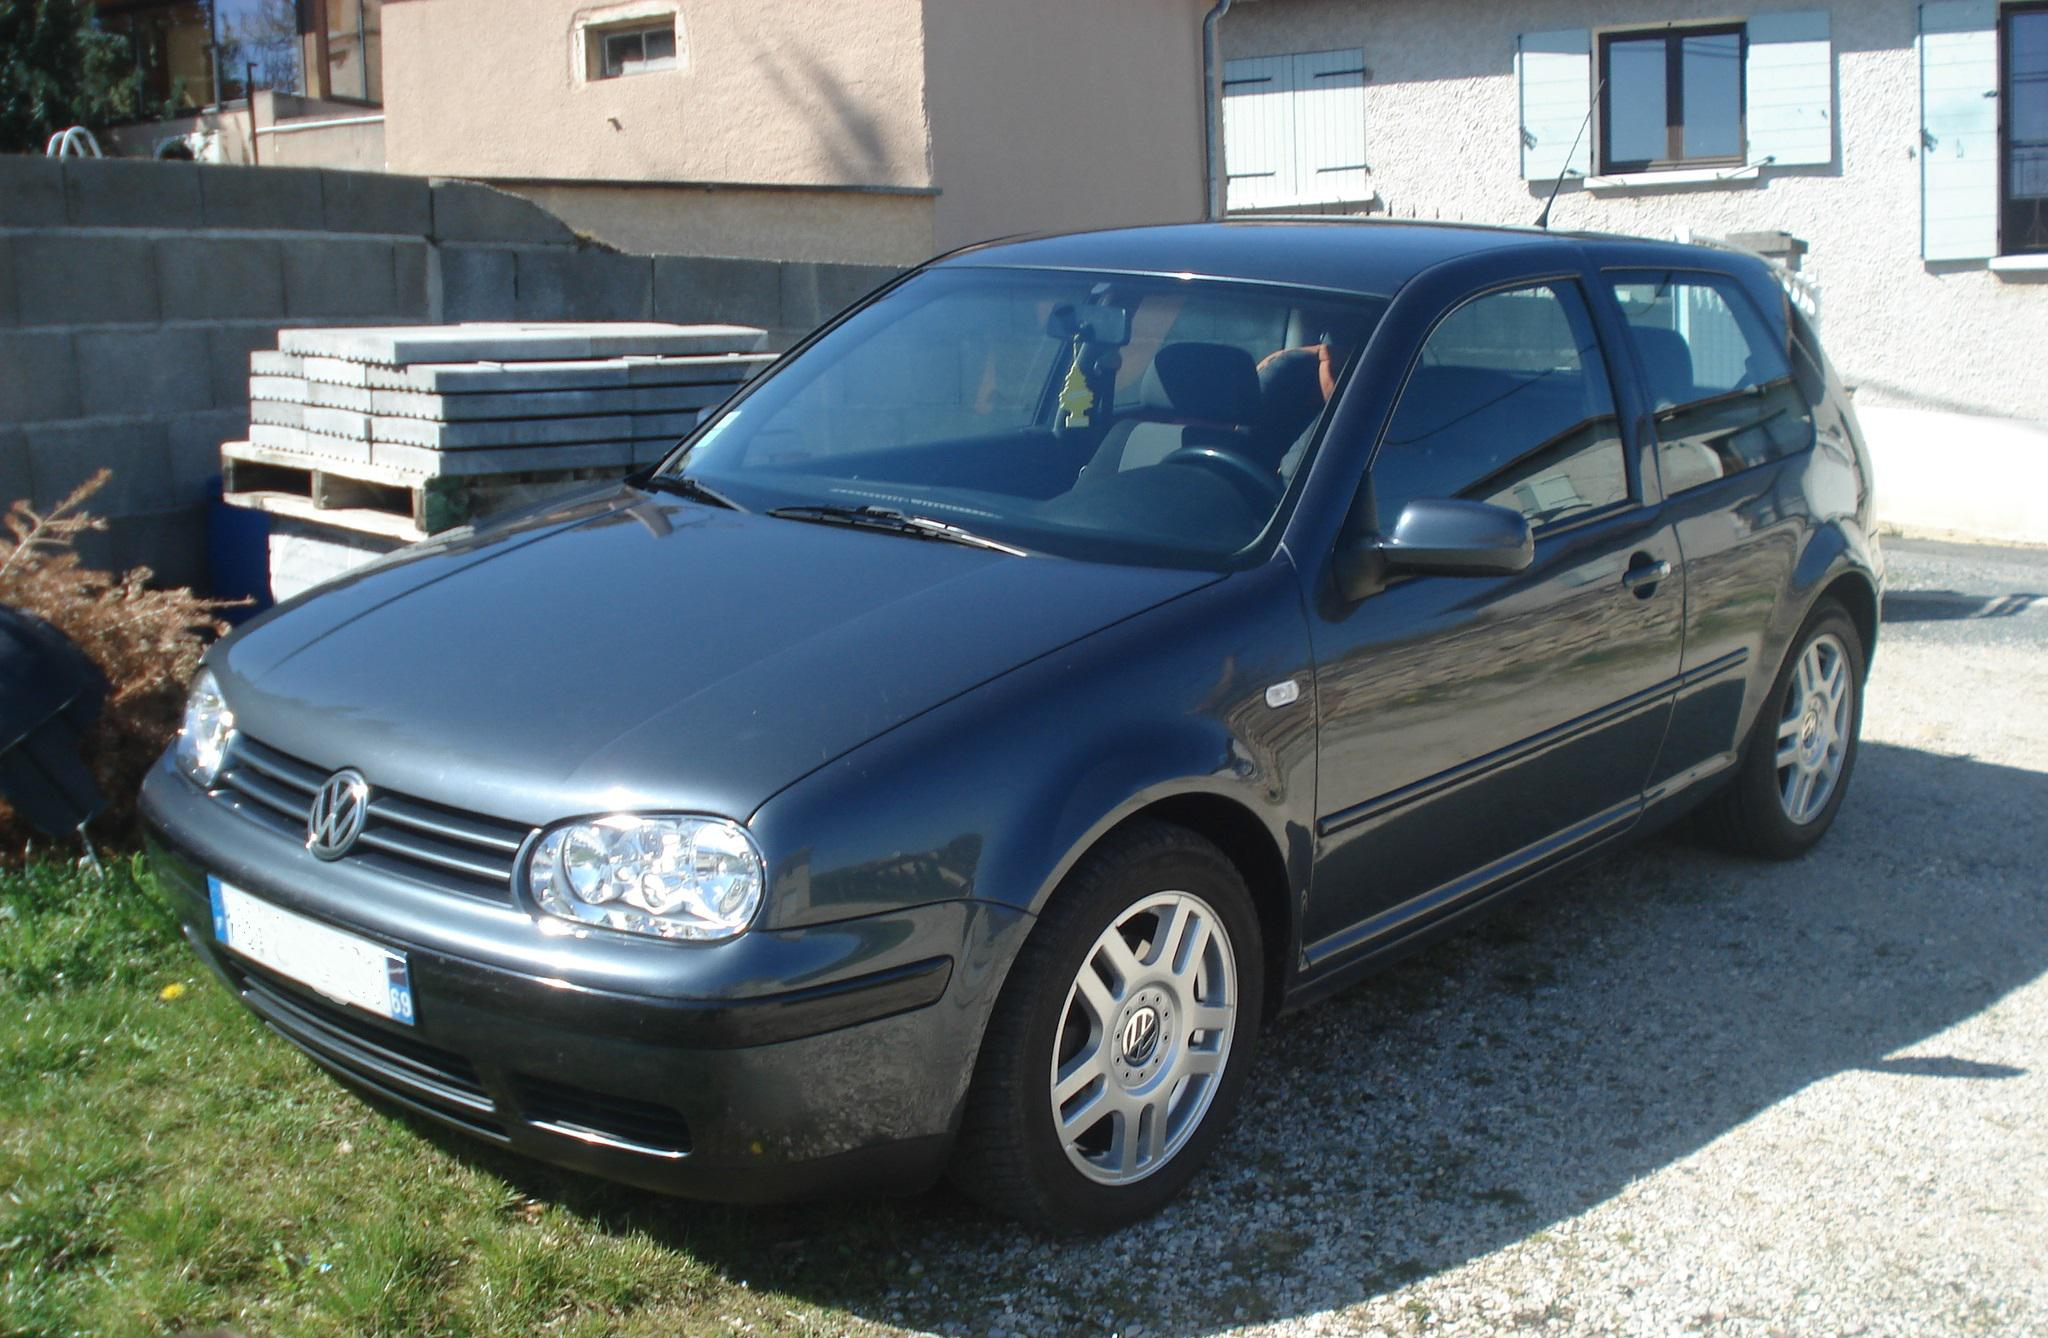 Vw golf iv 1 8 20v gti 1998 garage des golf iv tdi for Golf interieur montreal